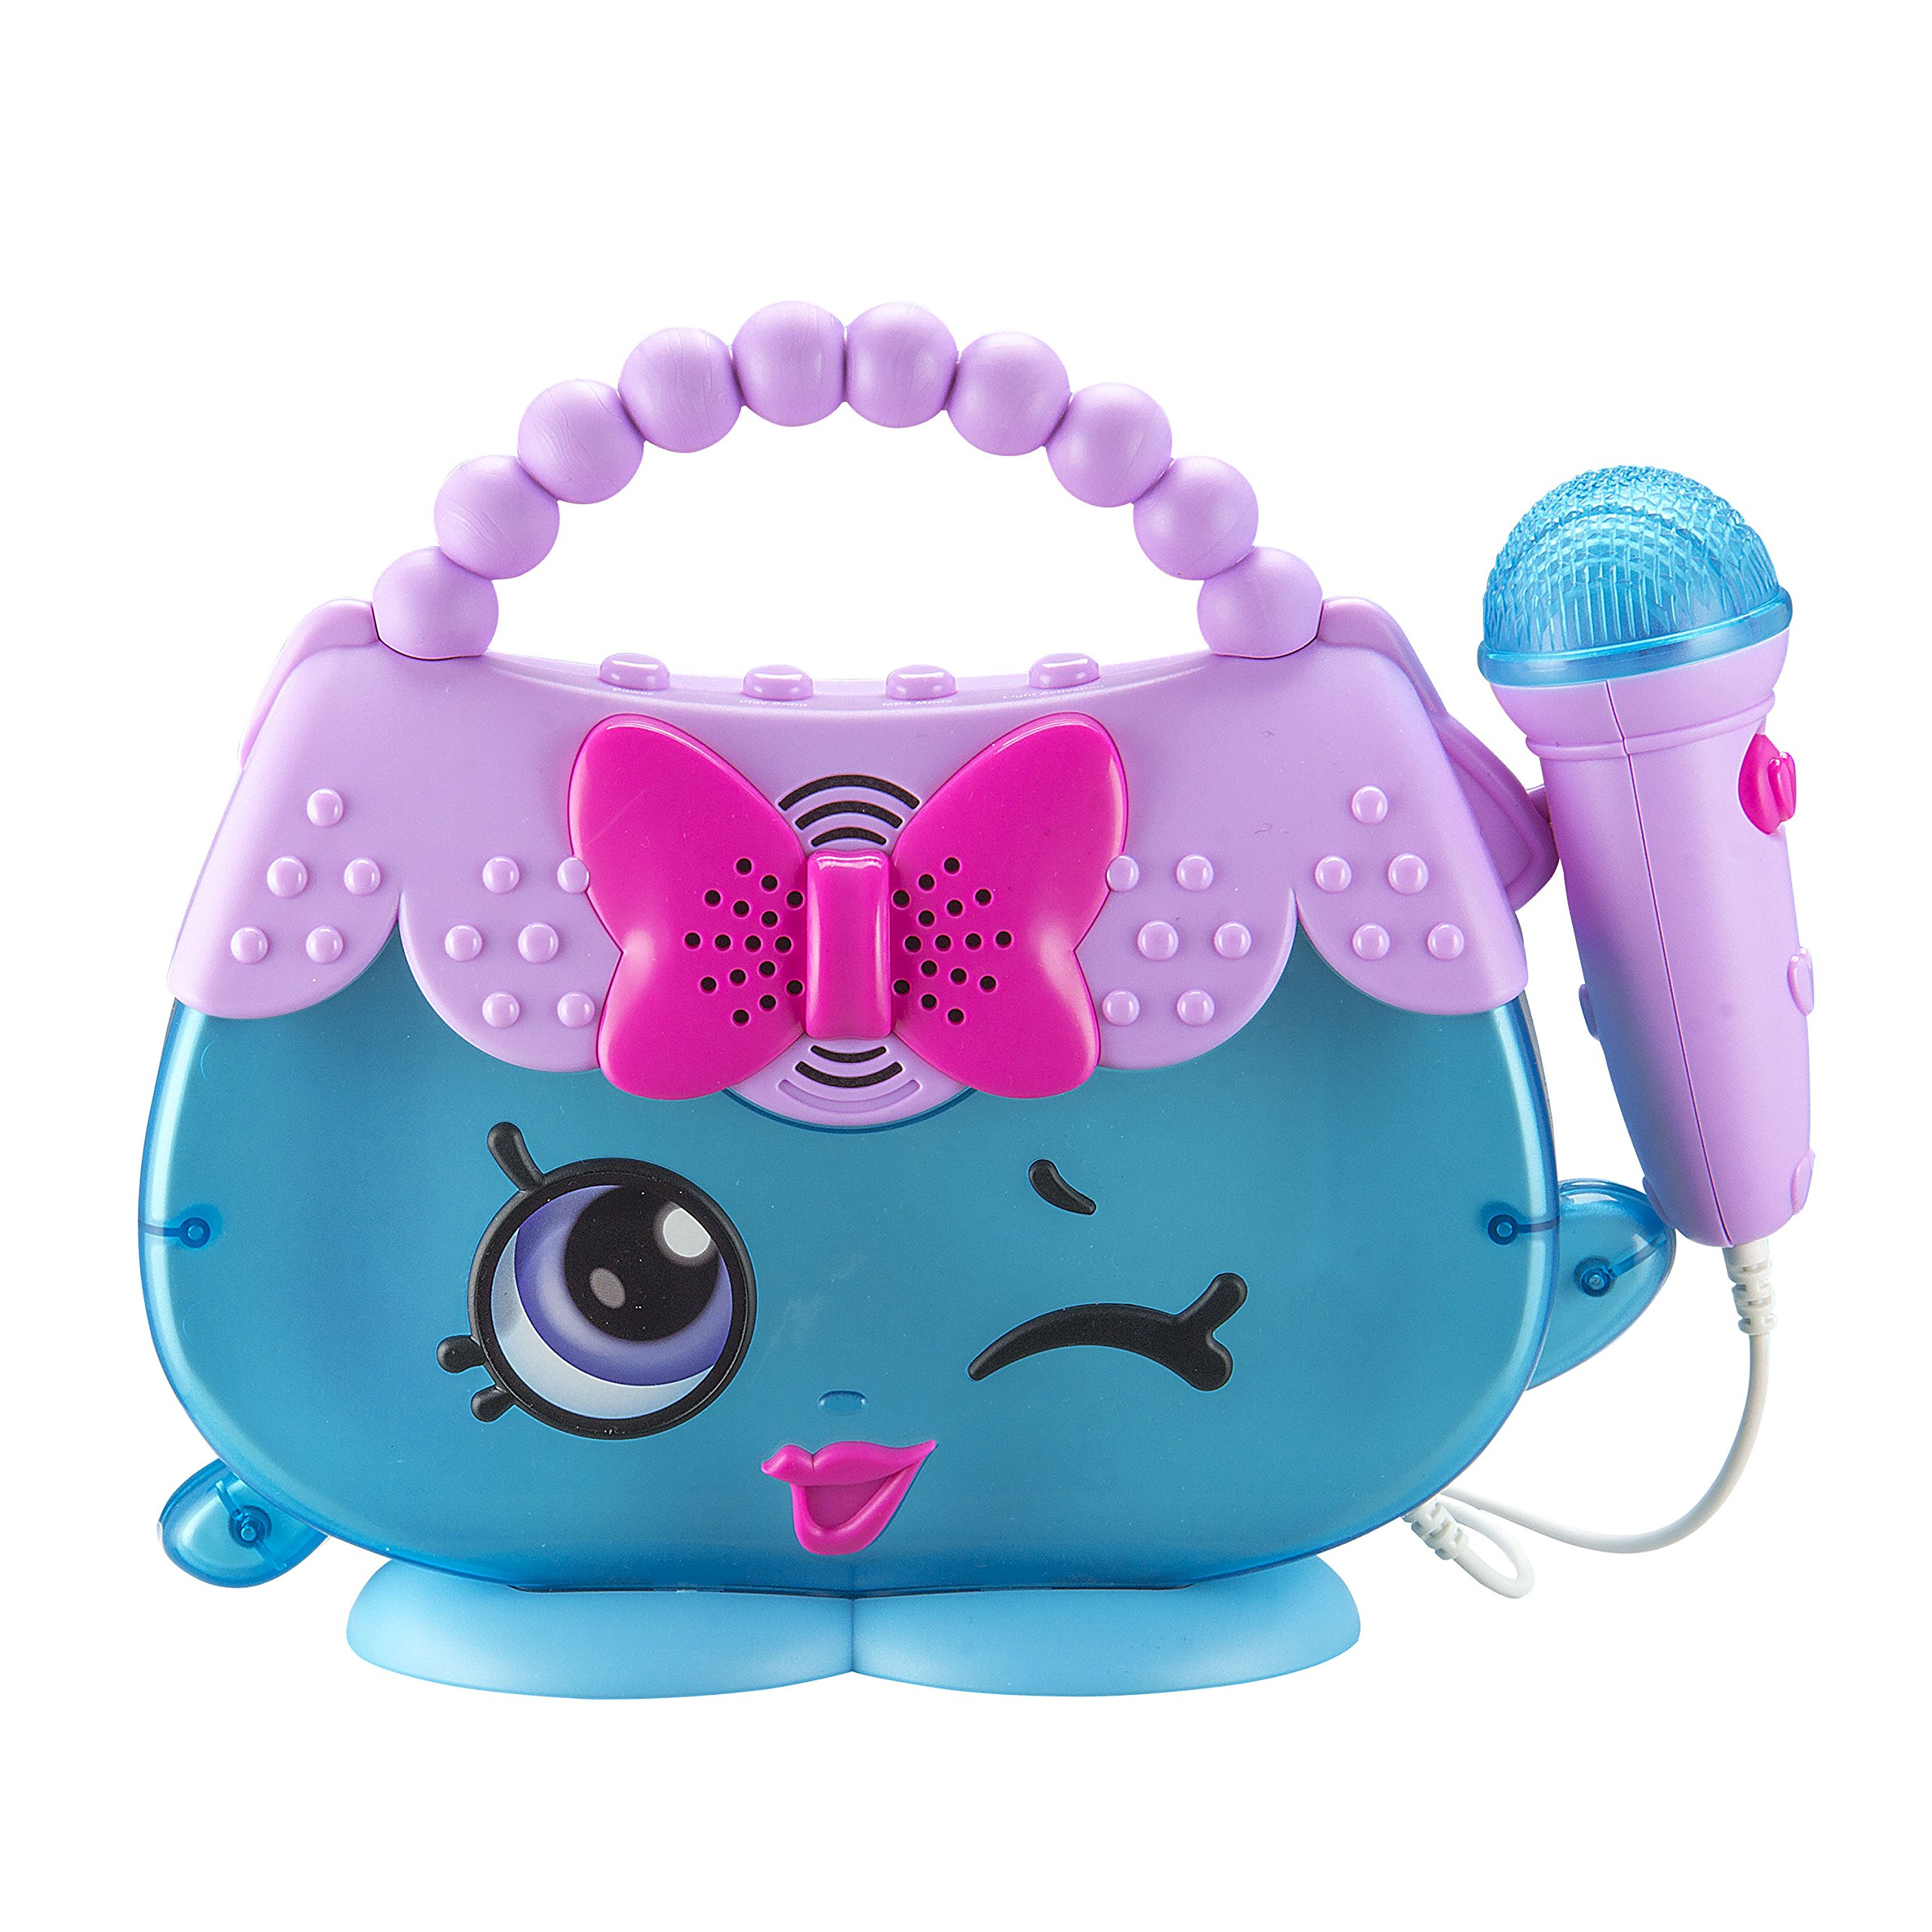 Shopkins Sing Along Boombox with Real Working Microphone Connects to Your MP3 Player Handbag Harriet Design